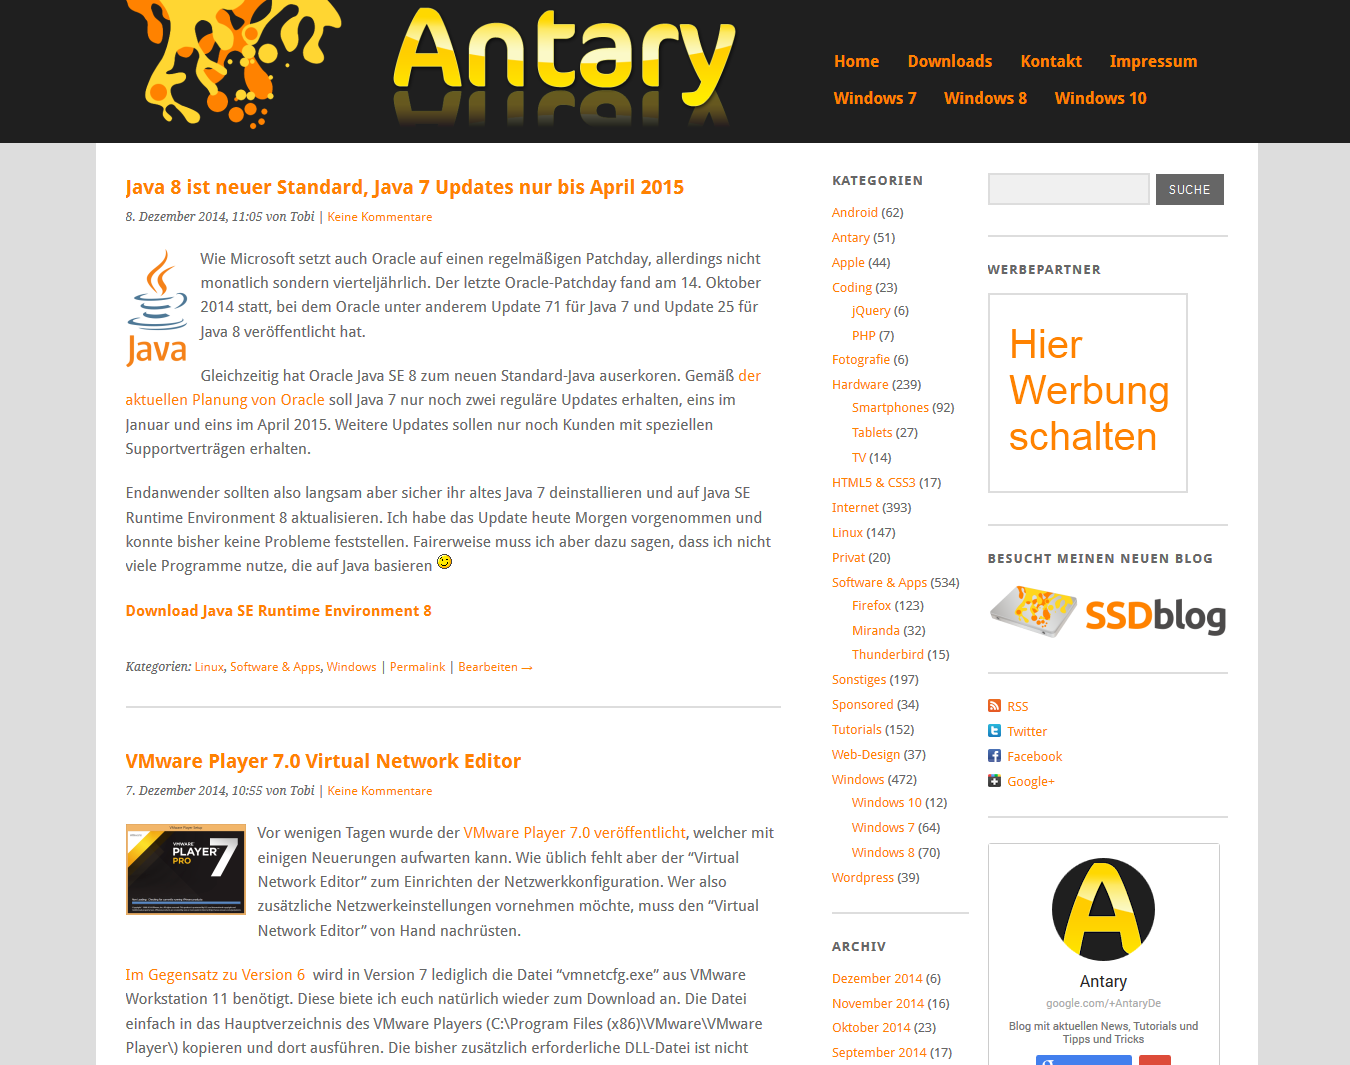 Altes Antary Design auf Yoko-Basis